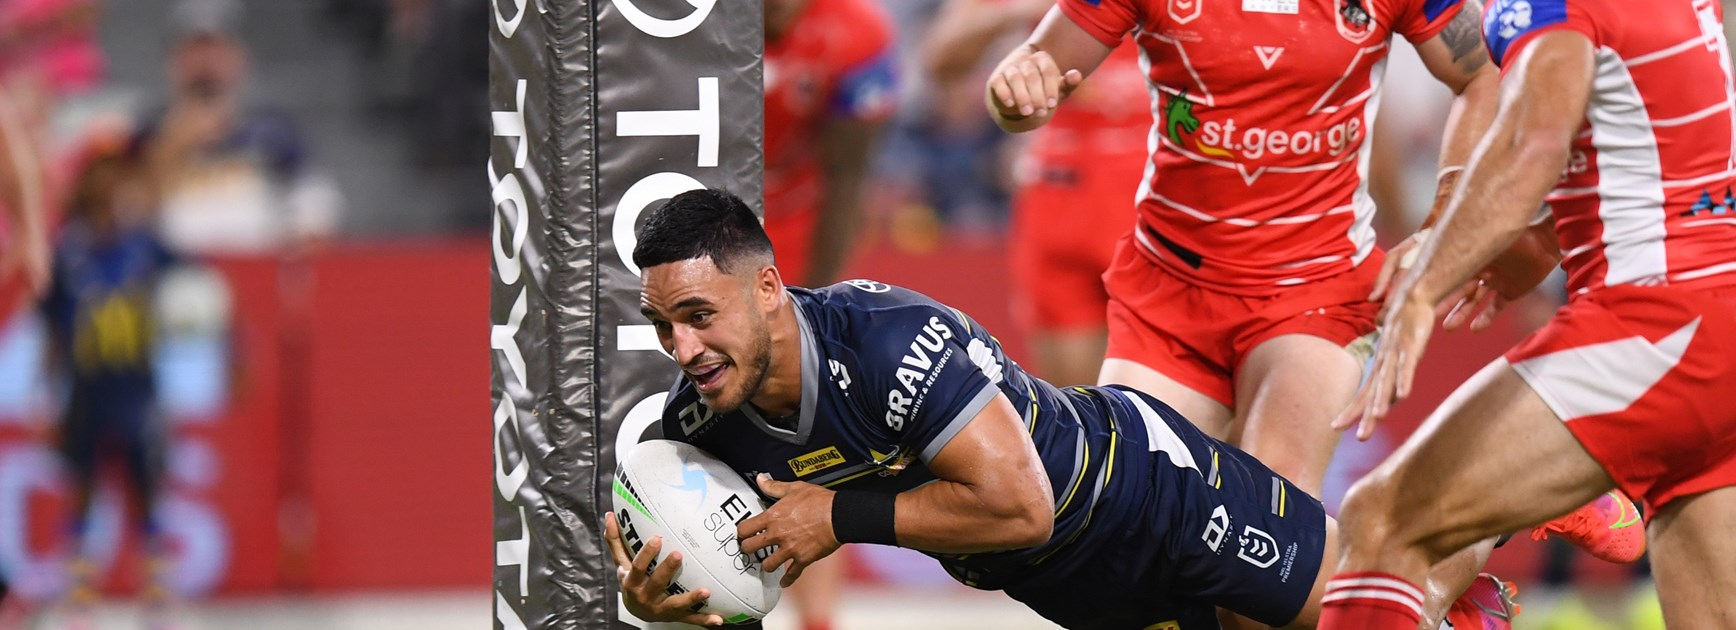 Round 2 snapshot: Morris wings it to top of Dally M leaderboard